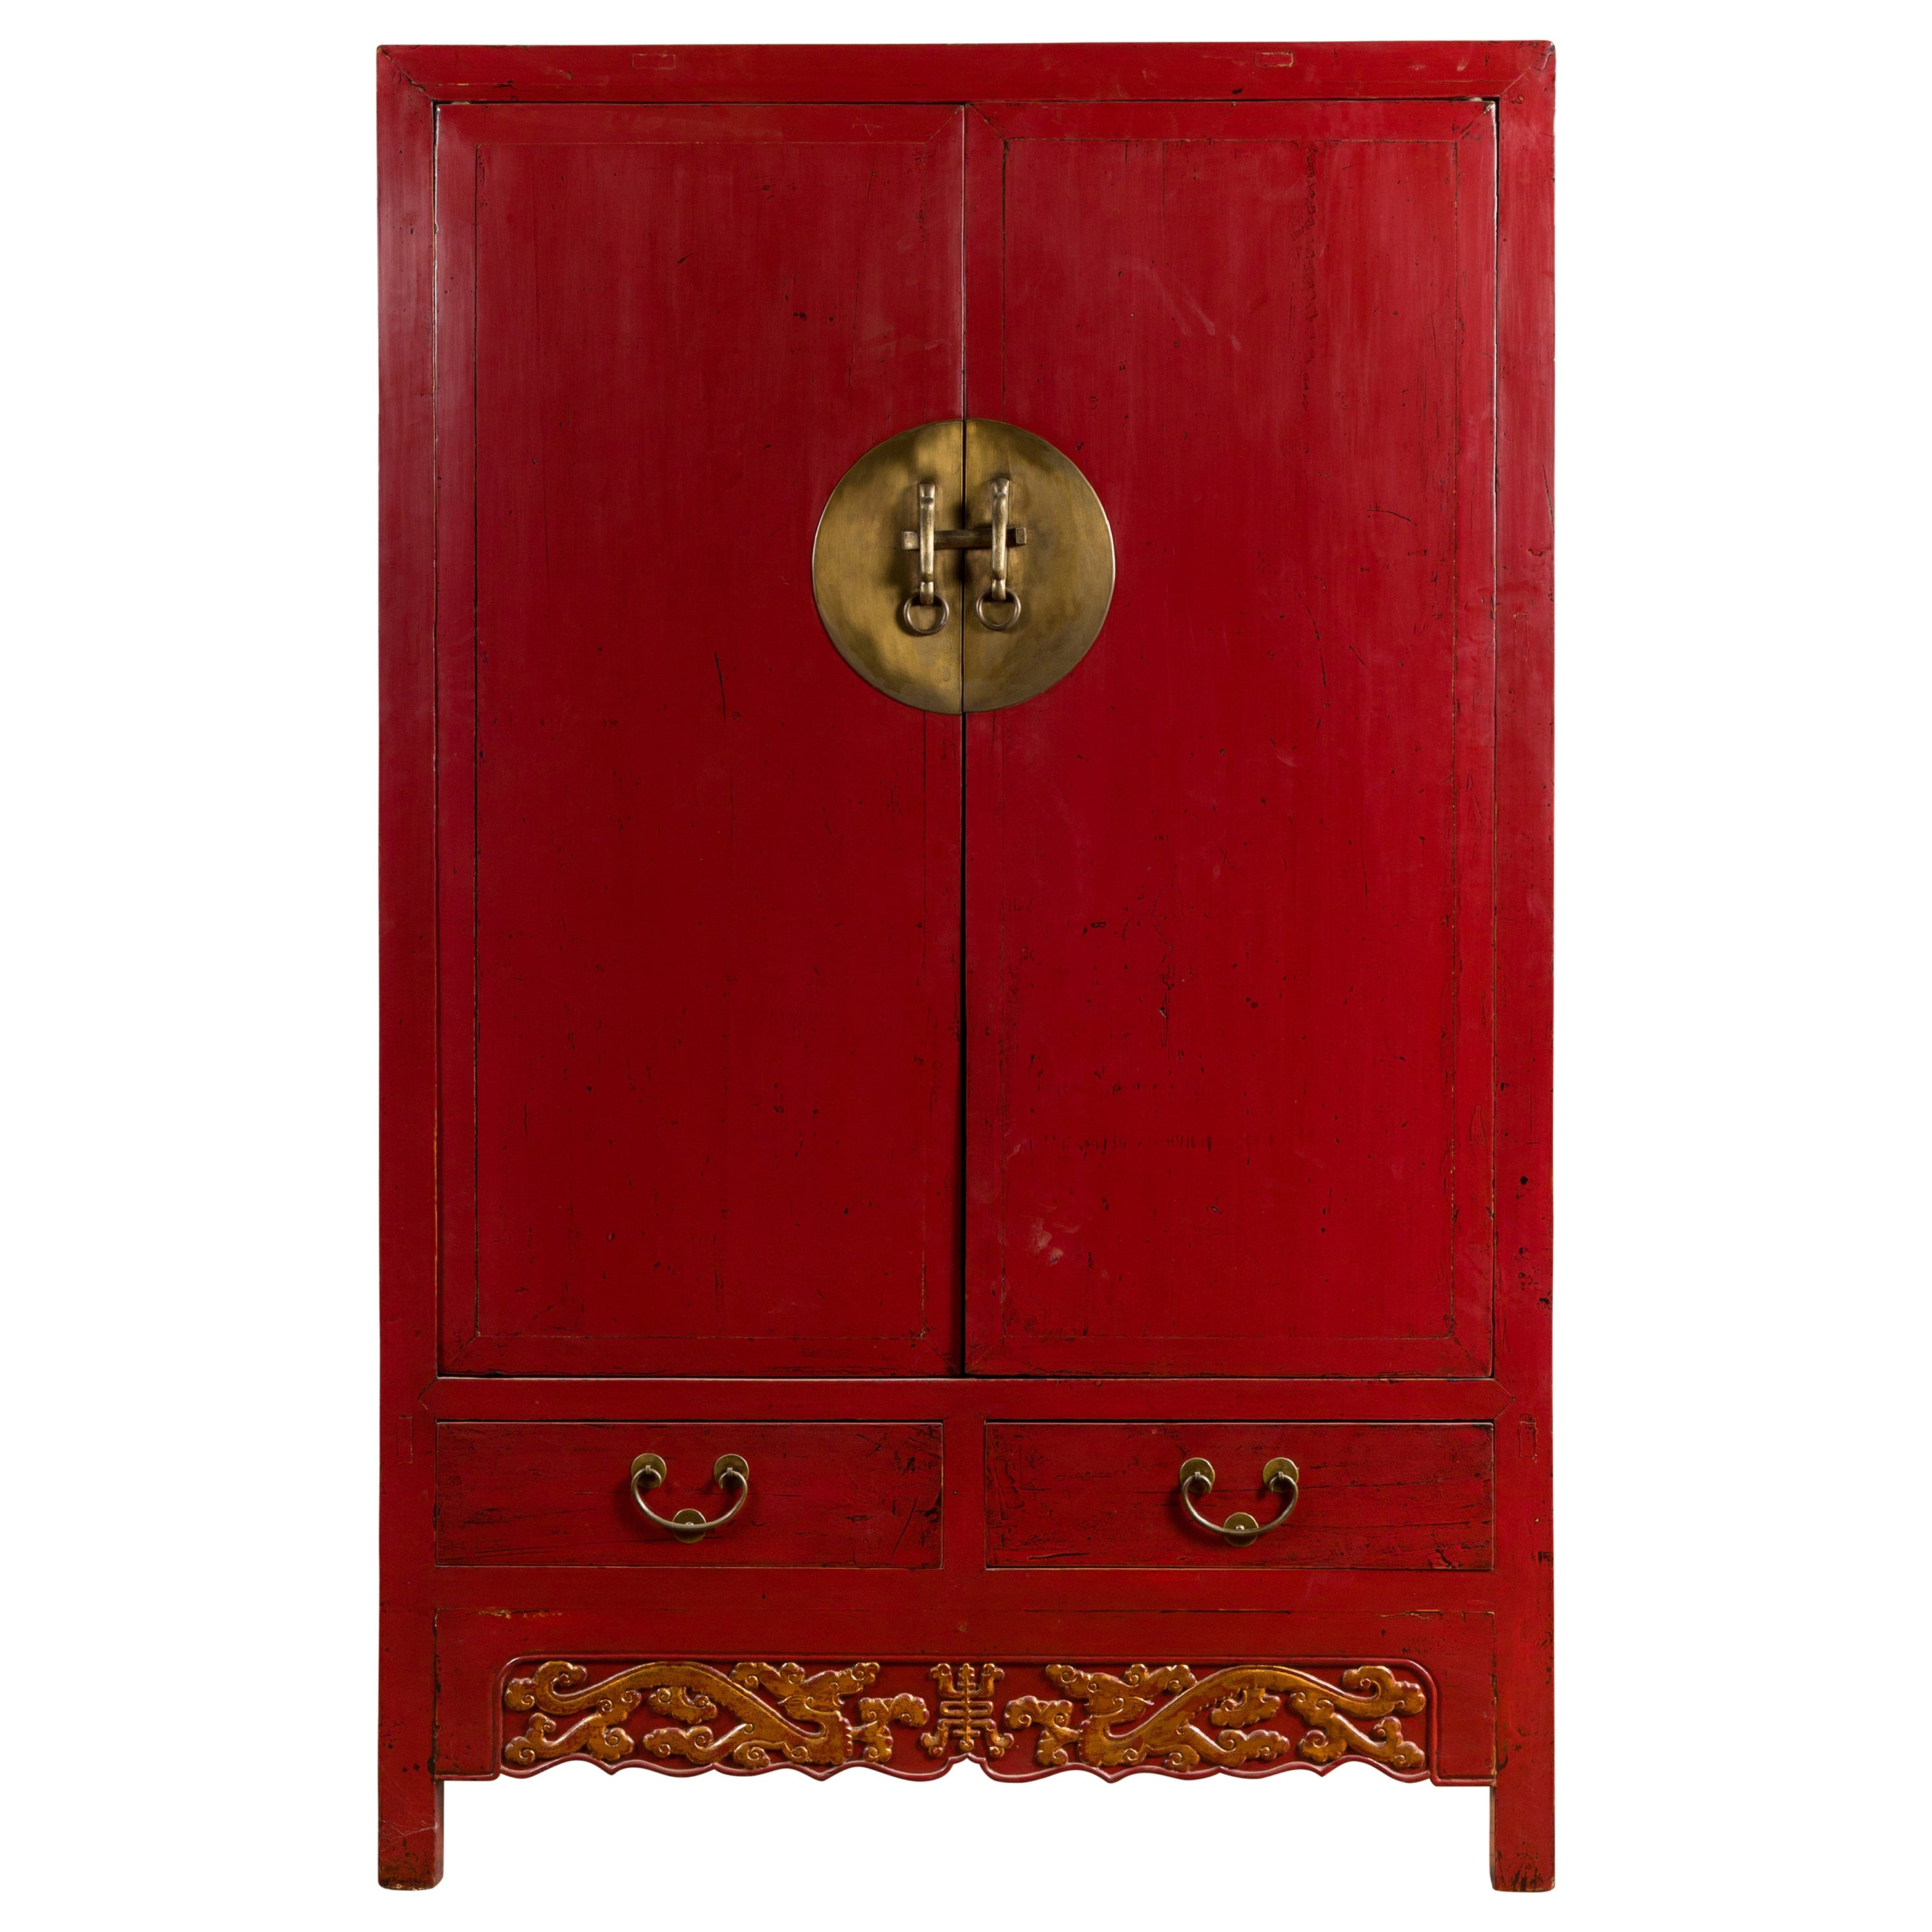 Chinese Red Lacquered Qing Dynasty 19th Century Cabinet with Carved Gilt Apron